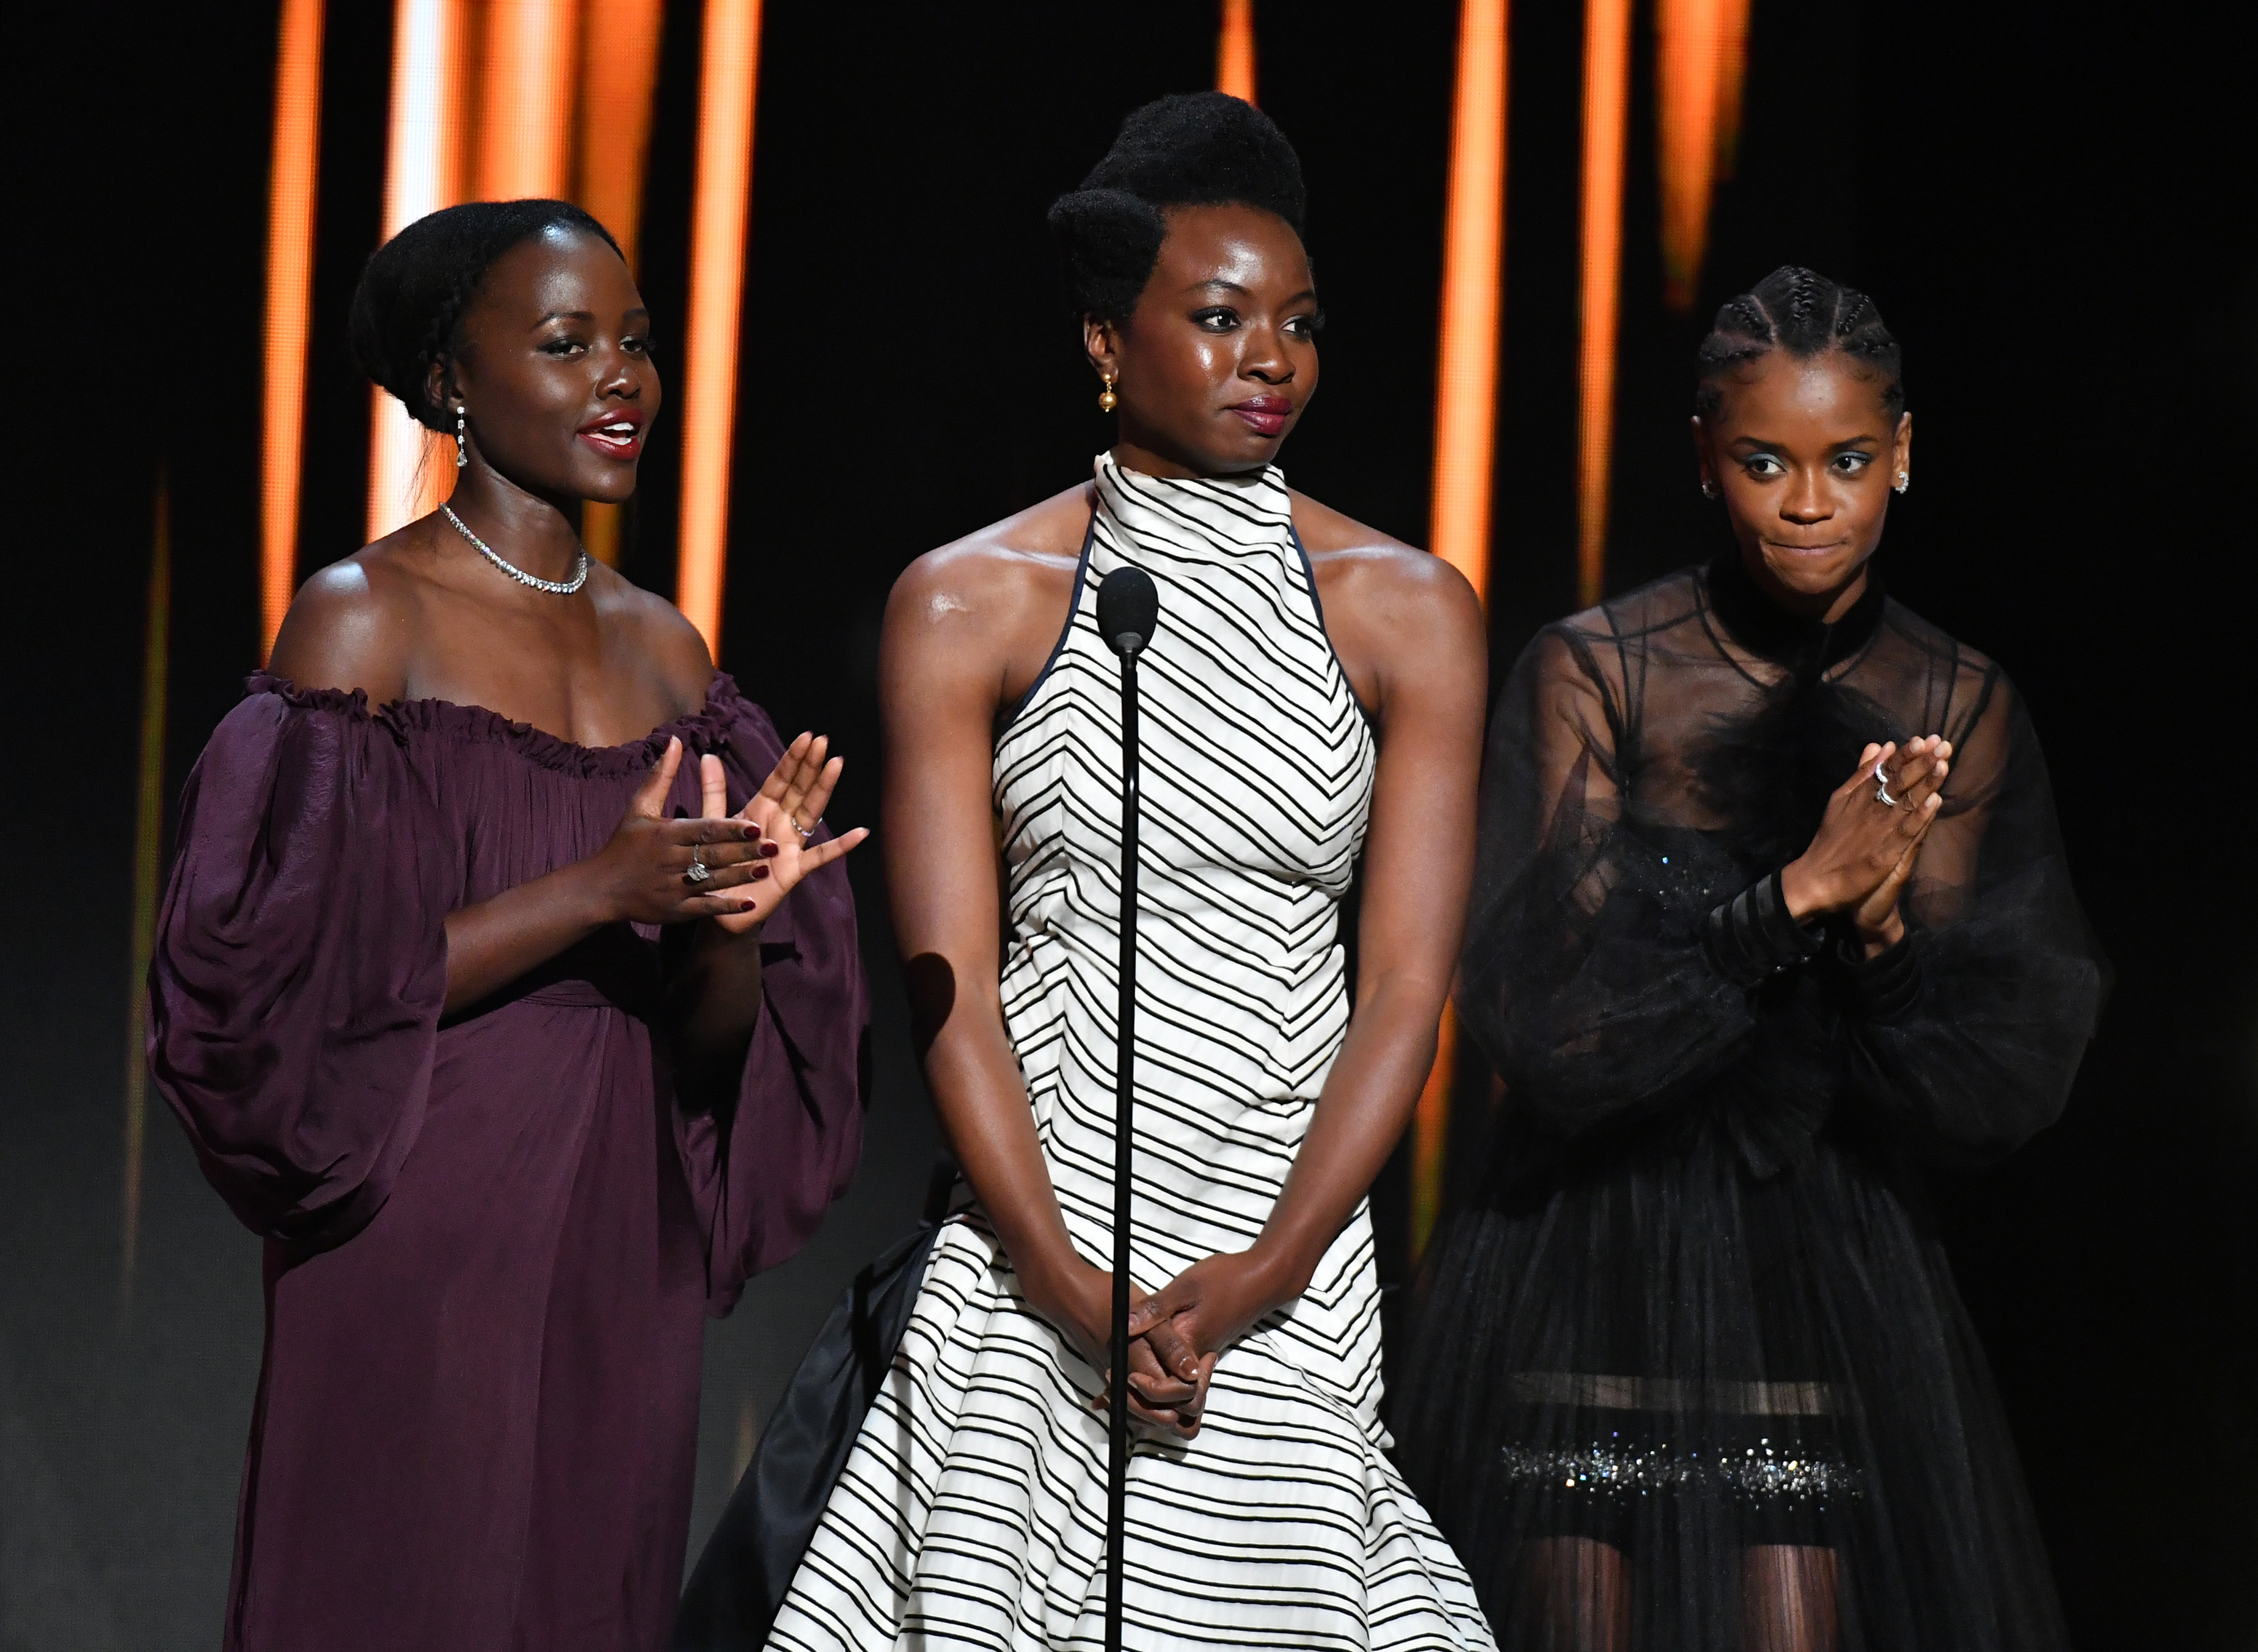 HOLLYWOOD, CALIFORNIA - MARCH 30: (L-R) Lupita Nyong'o, Danai Gurira, and Letitia Wright speak onstage at the 50th NAACP Image Awards at Dolby Theatre on March 30, 2019 in Hollywood, California. (Photo by Earl Gibson III/Getty Images for NAACP)